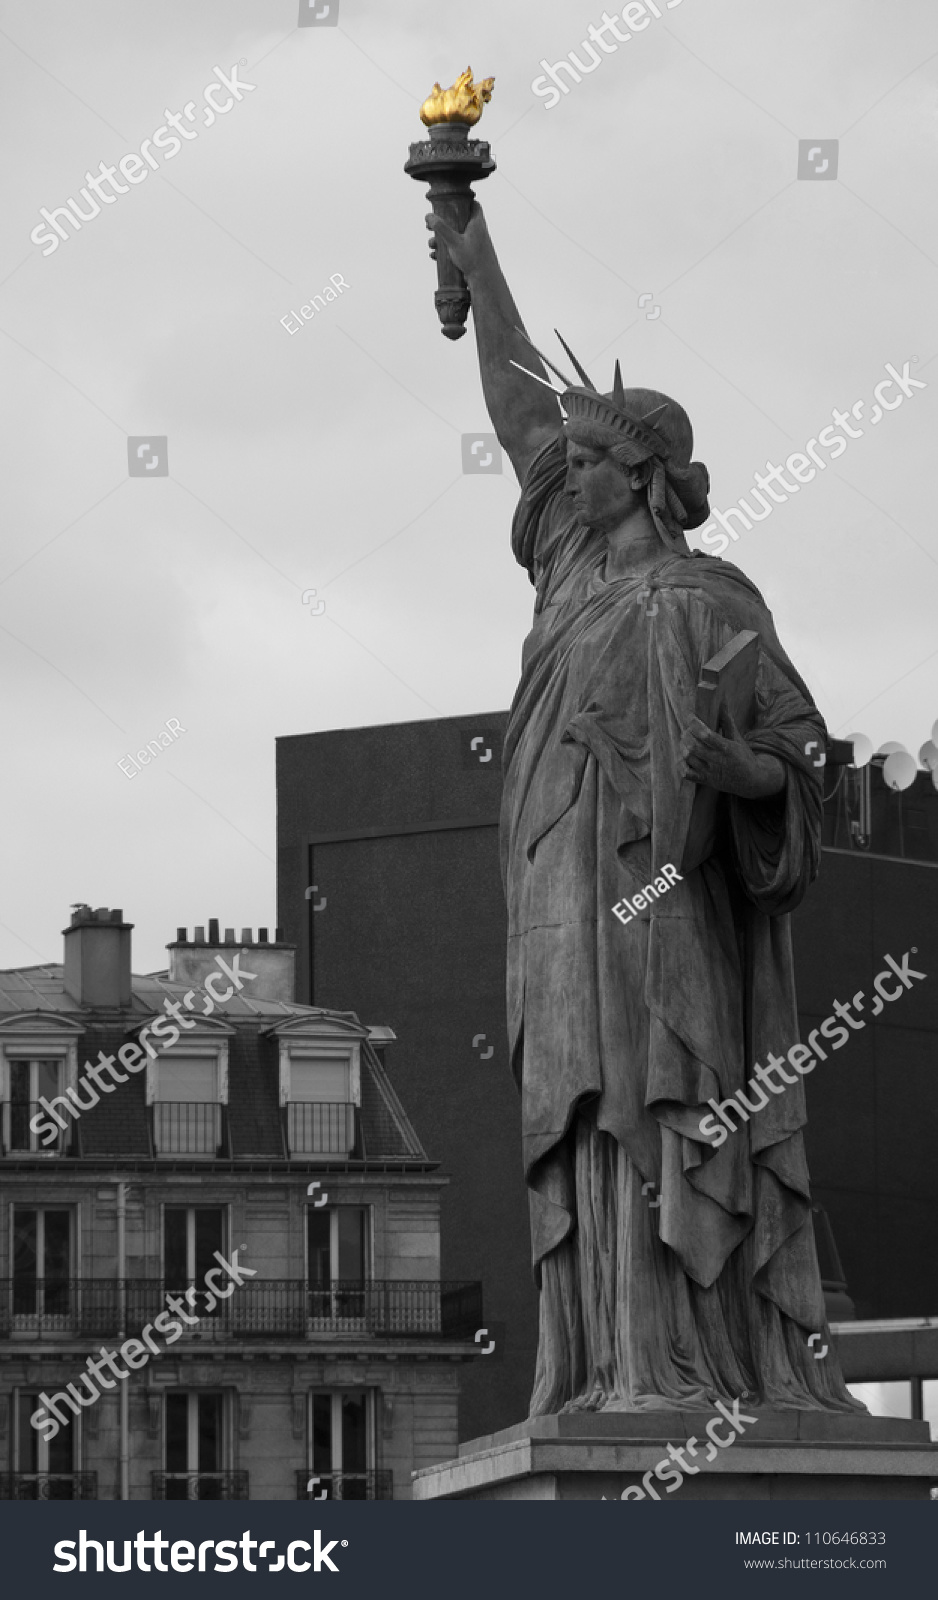 Statue of Liberty Paris France